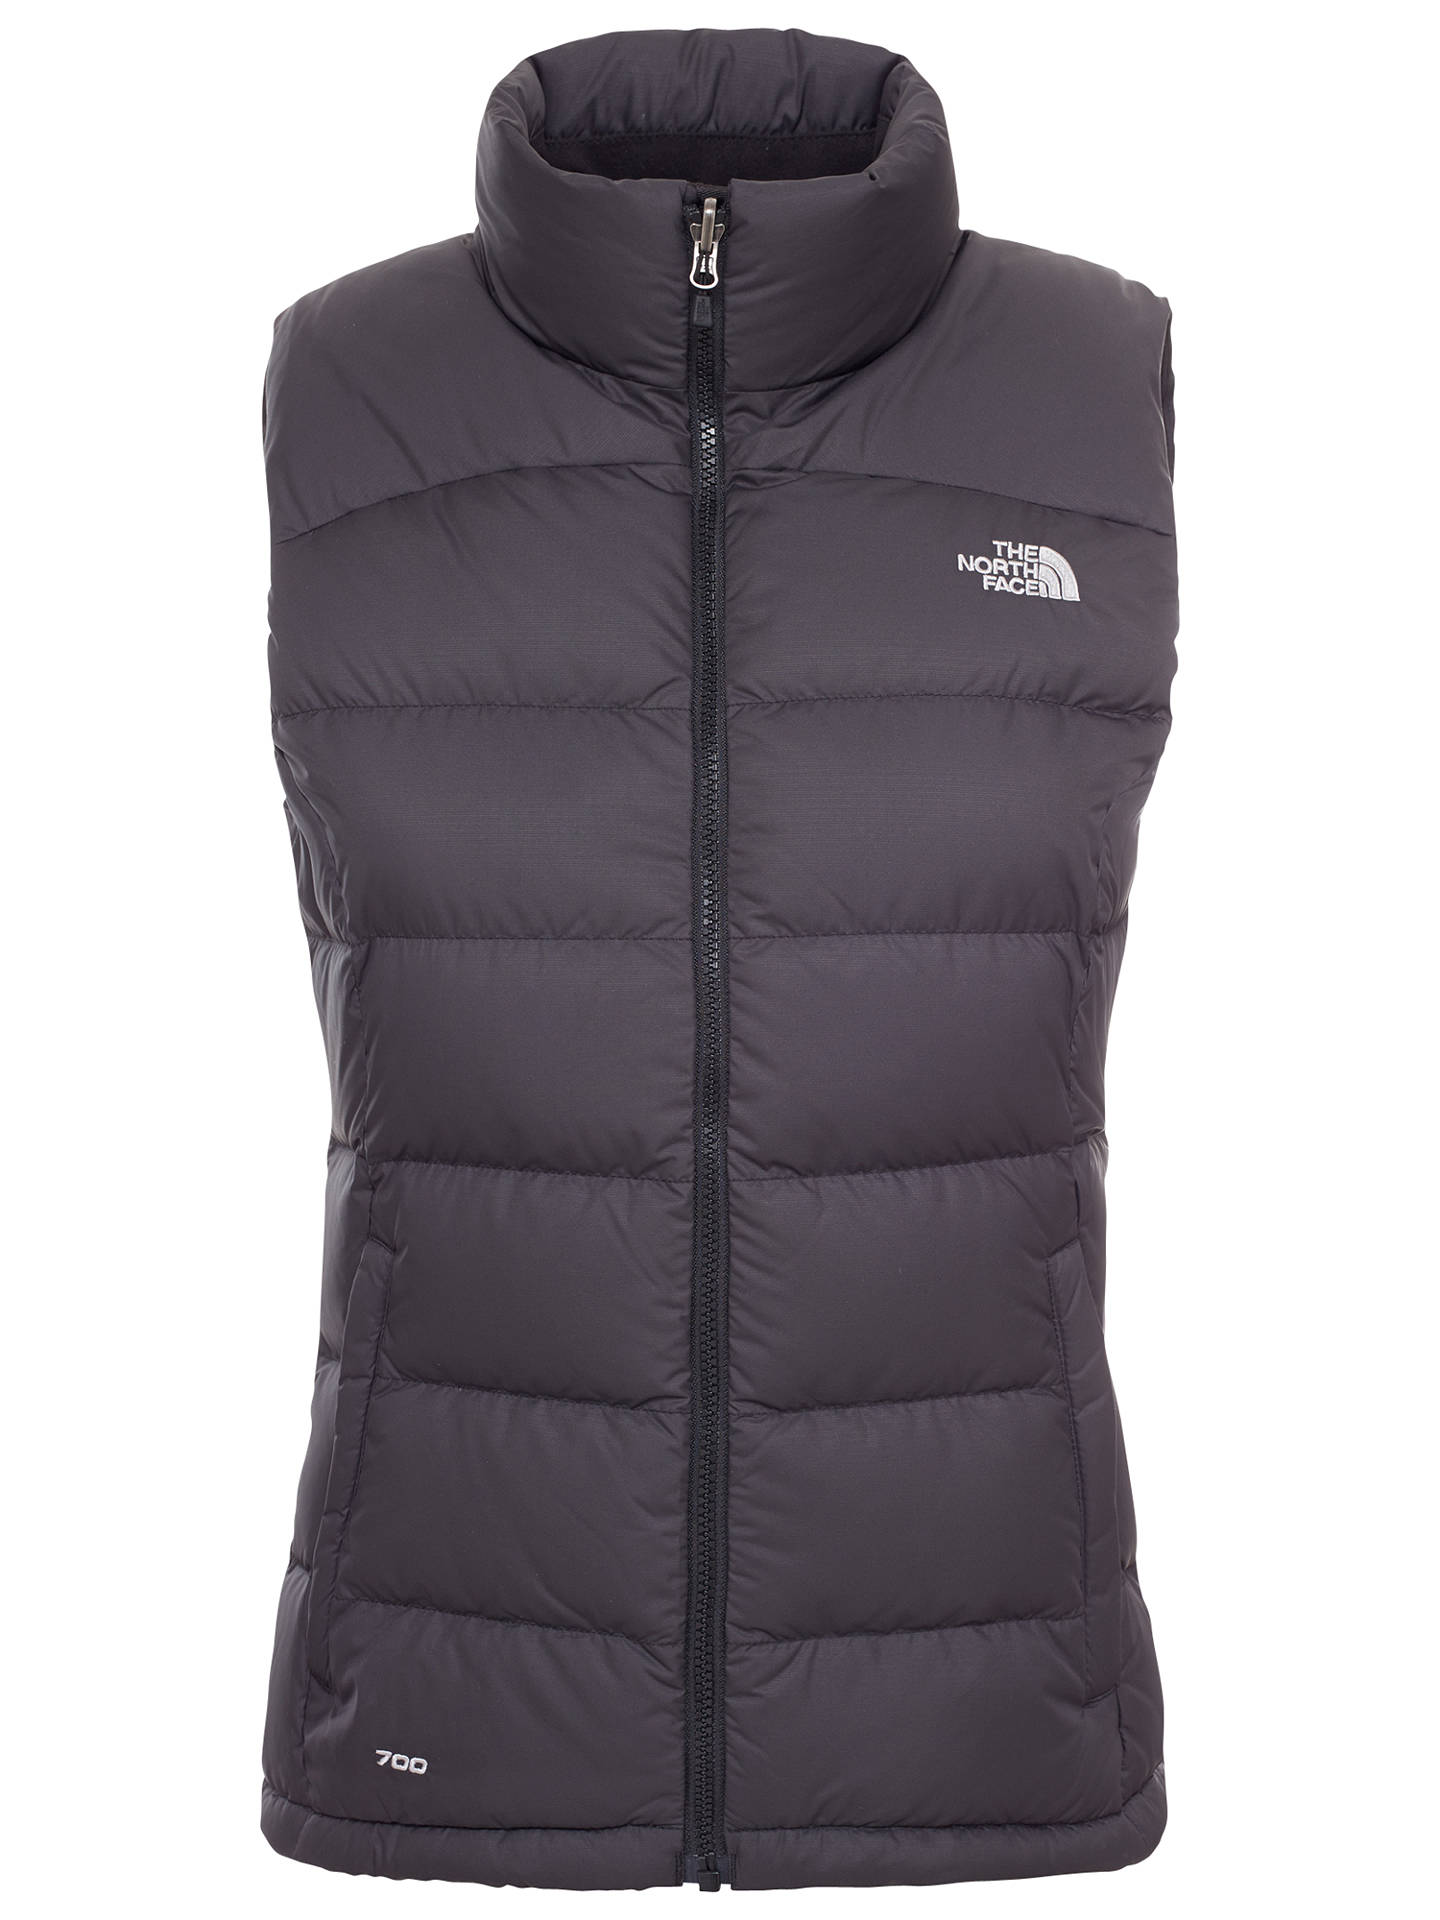 BuyThe North Face Nuptse 2 Women s Gilet ced68733b